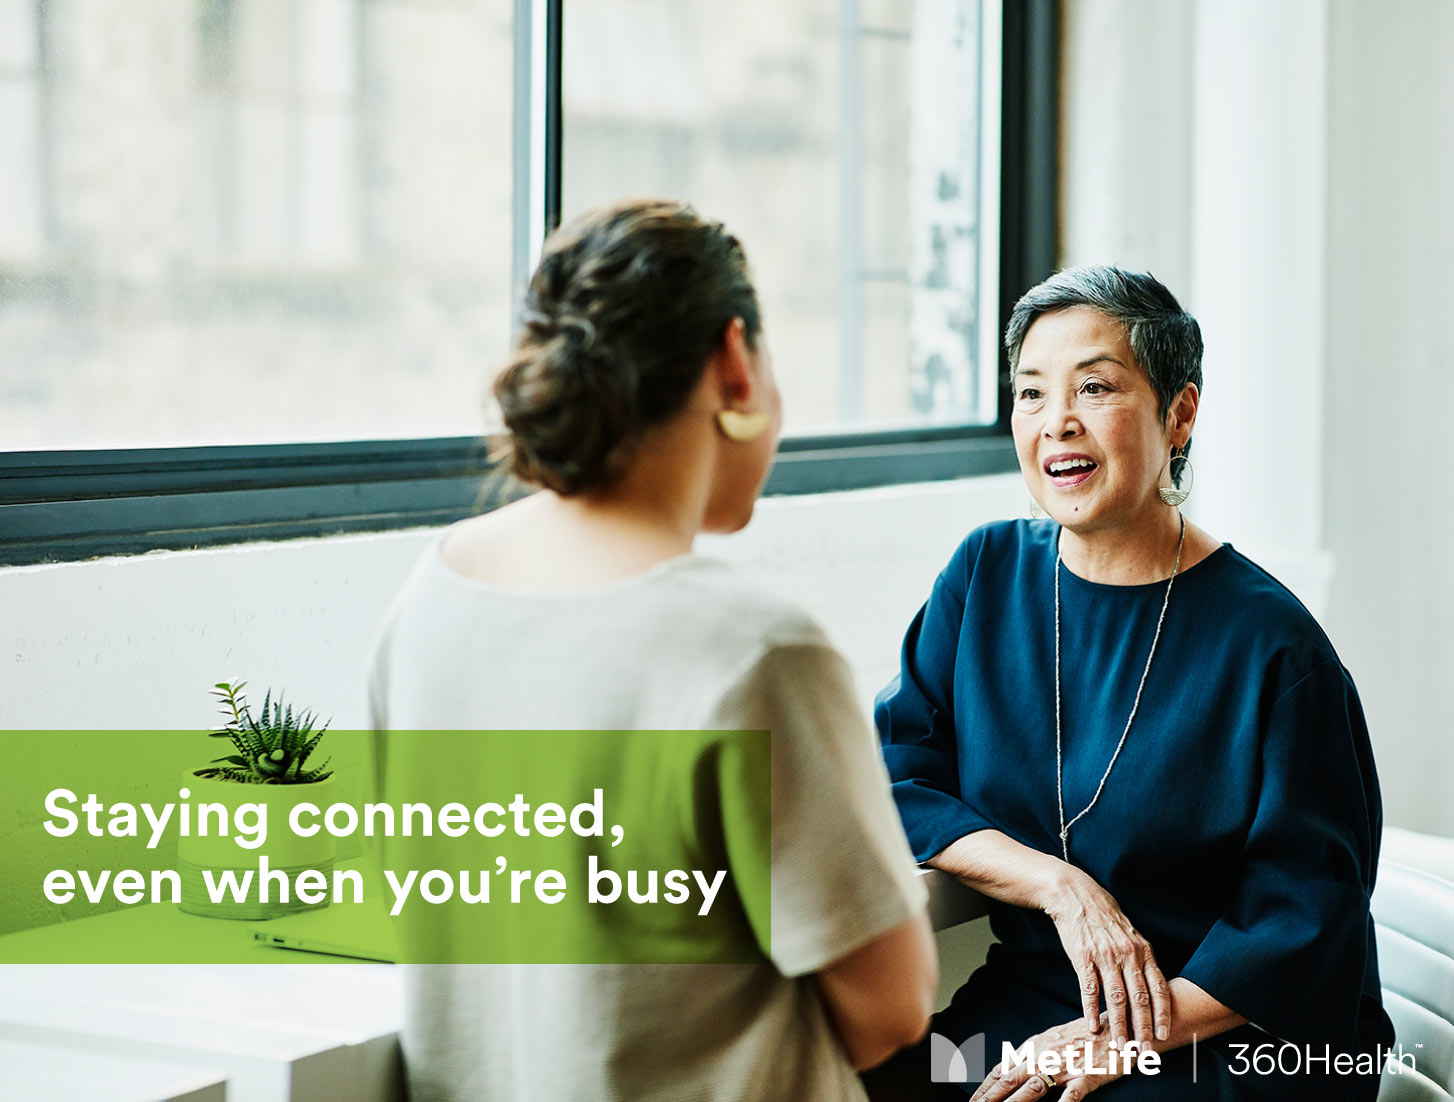 Staying connected, even when you're busy